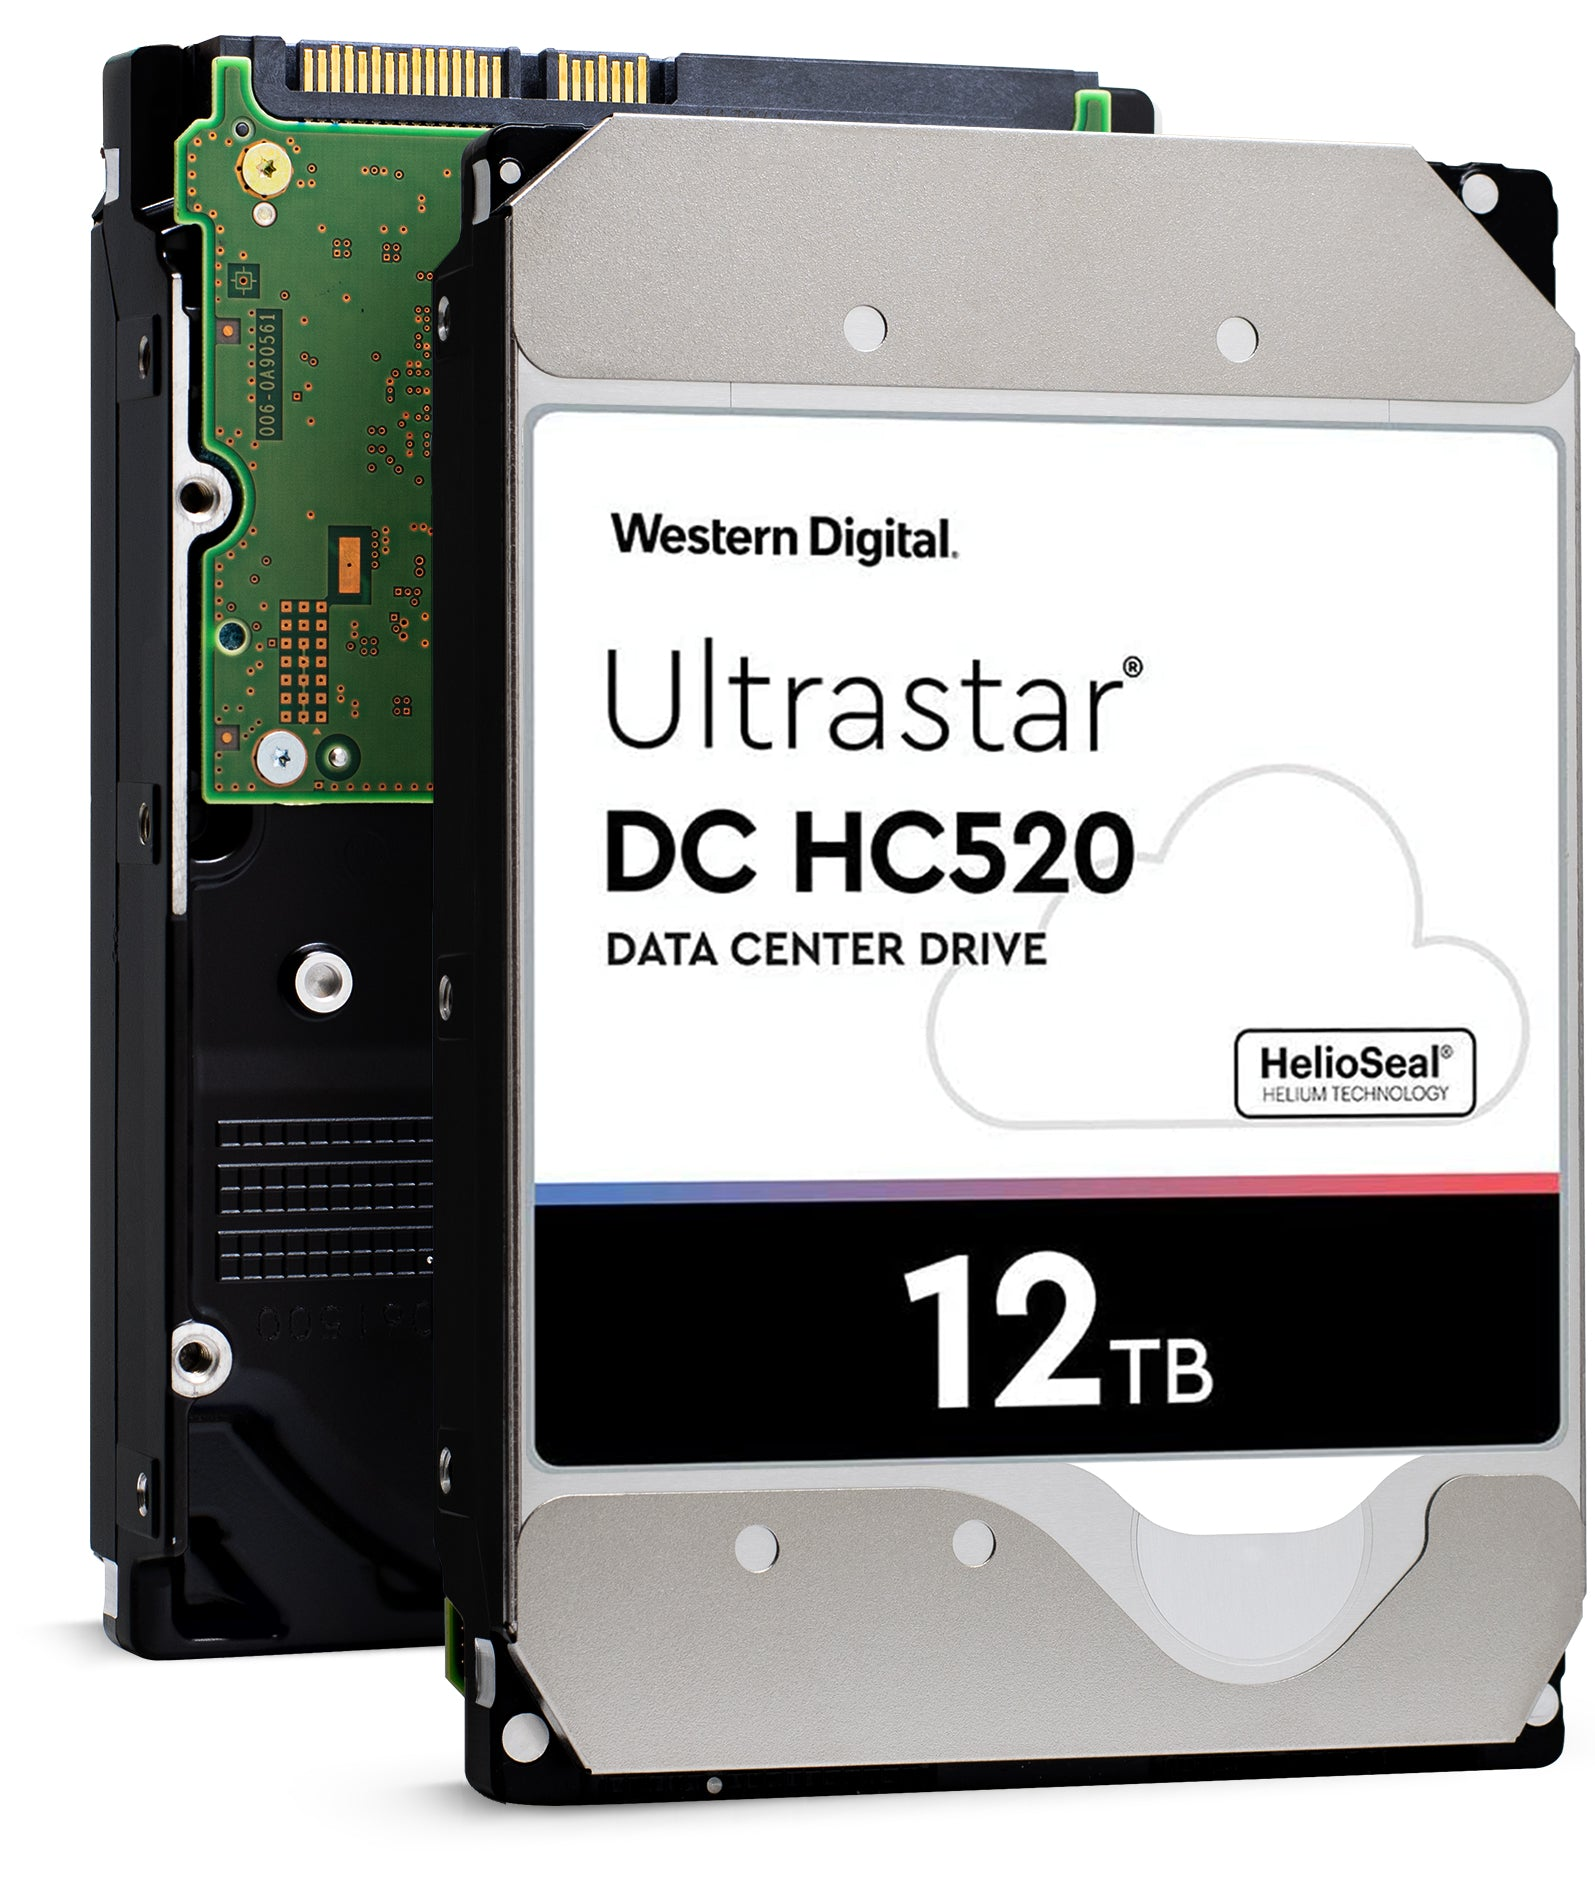 "Western Digital Ultrastar DC HC520 HUH721212ALE600 0F29590 12TB 7.2K RPM SATA 6Gb/s 512e 256MB 3.5"" ISE Power Disable Pin Manufacturer Recertified HDD"